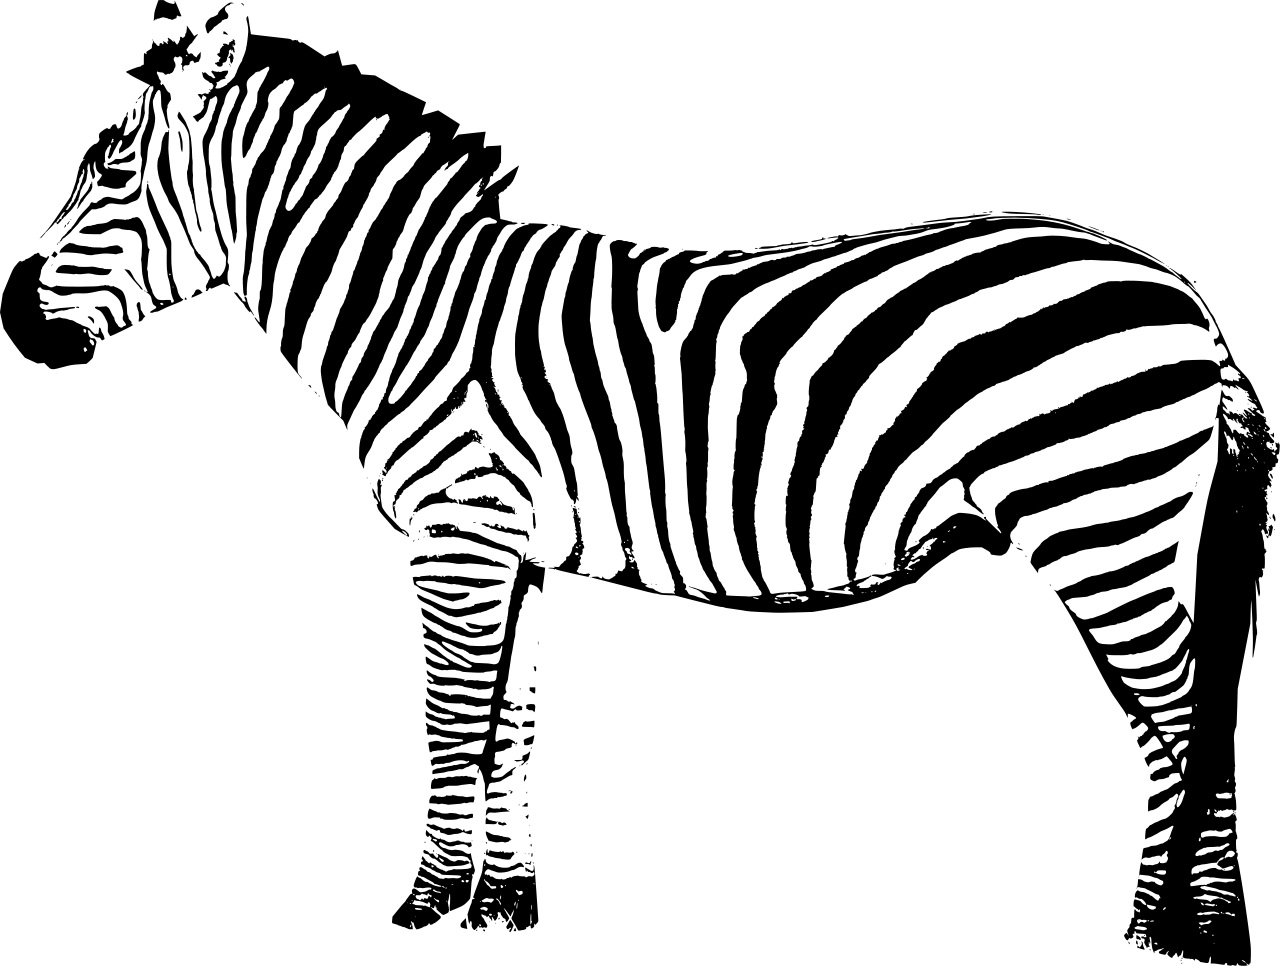 zebra colouring pages to print zebra coloring pages download and print zebra coloring pages print pages zebra to colouring